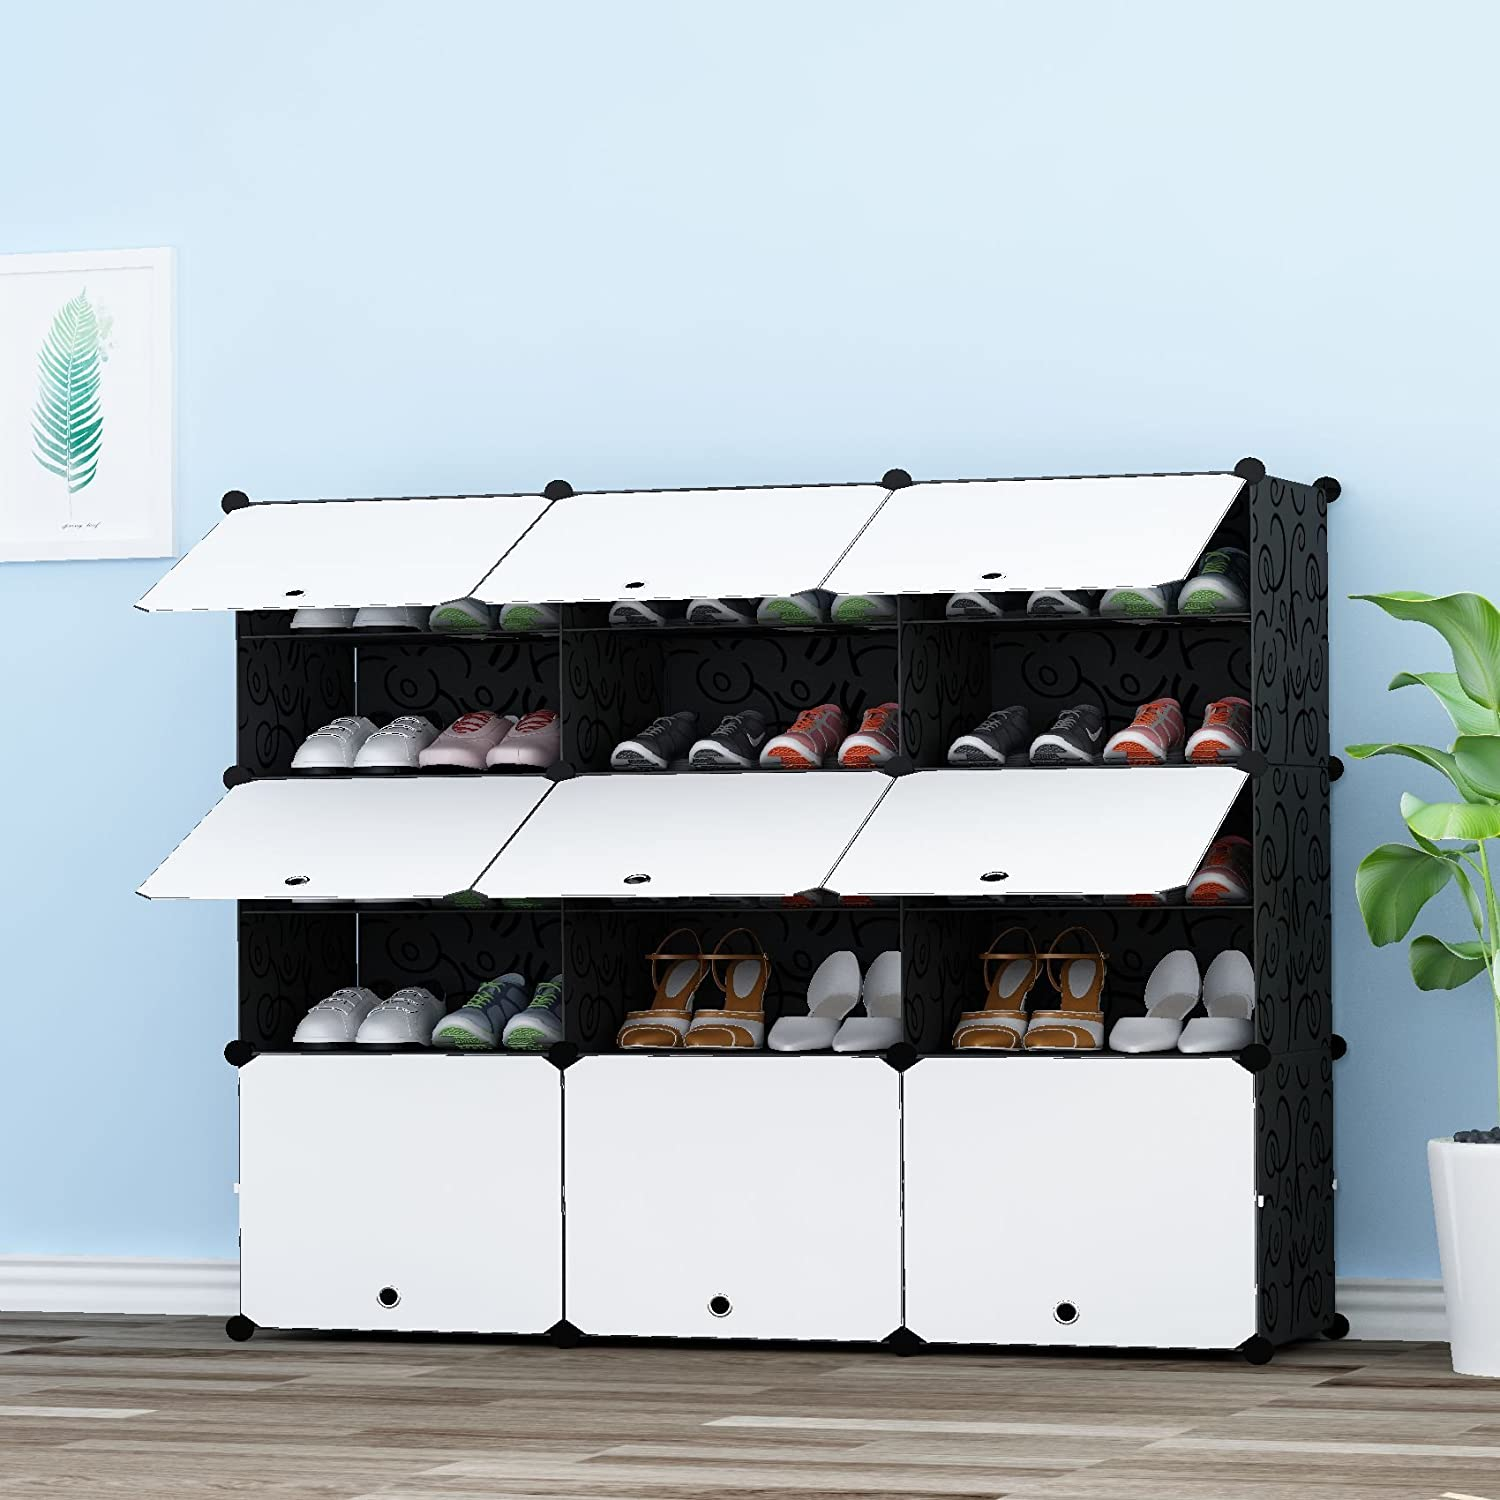 Slippers Boots Shoe Rack Ideal for Shoes JOISCOPE Portable Shoe Storage Organzier Tower Modular Cabinet for Space Saving 2//5,White with Transparent Doors /…